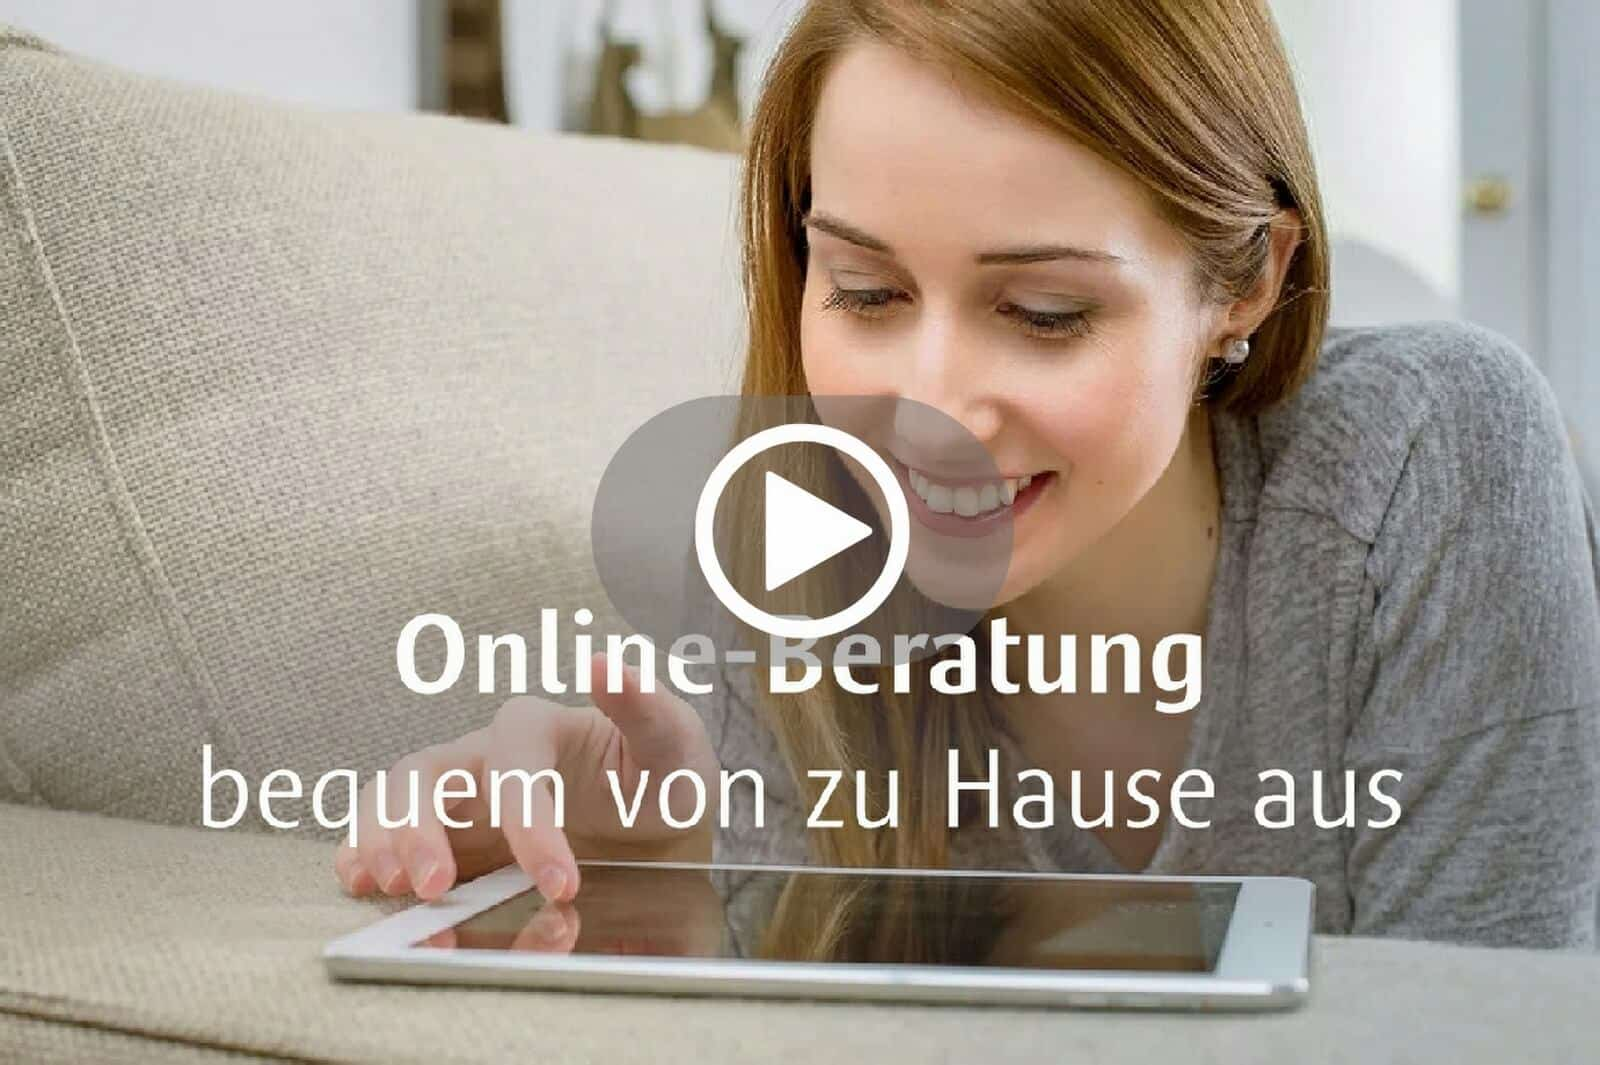 Videos - Preview - Video Online-Beratung-1600x1200